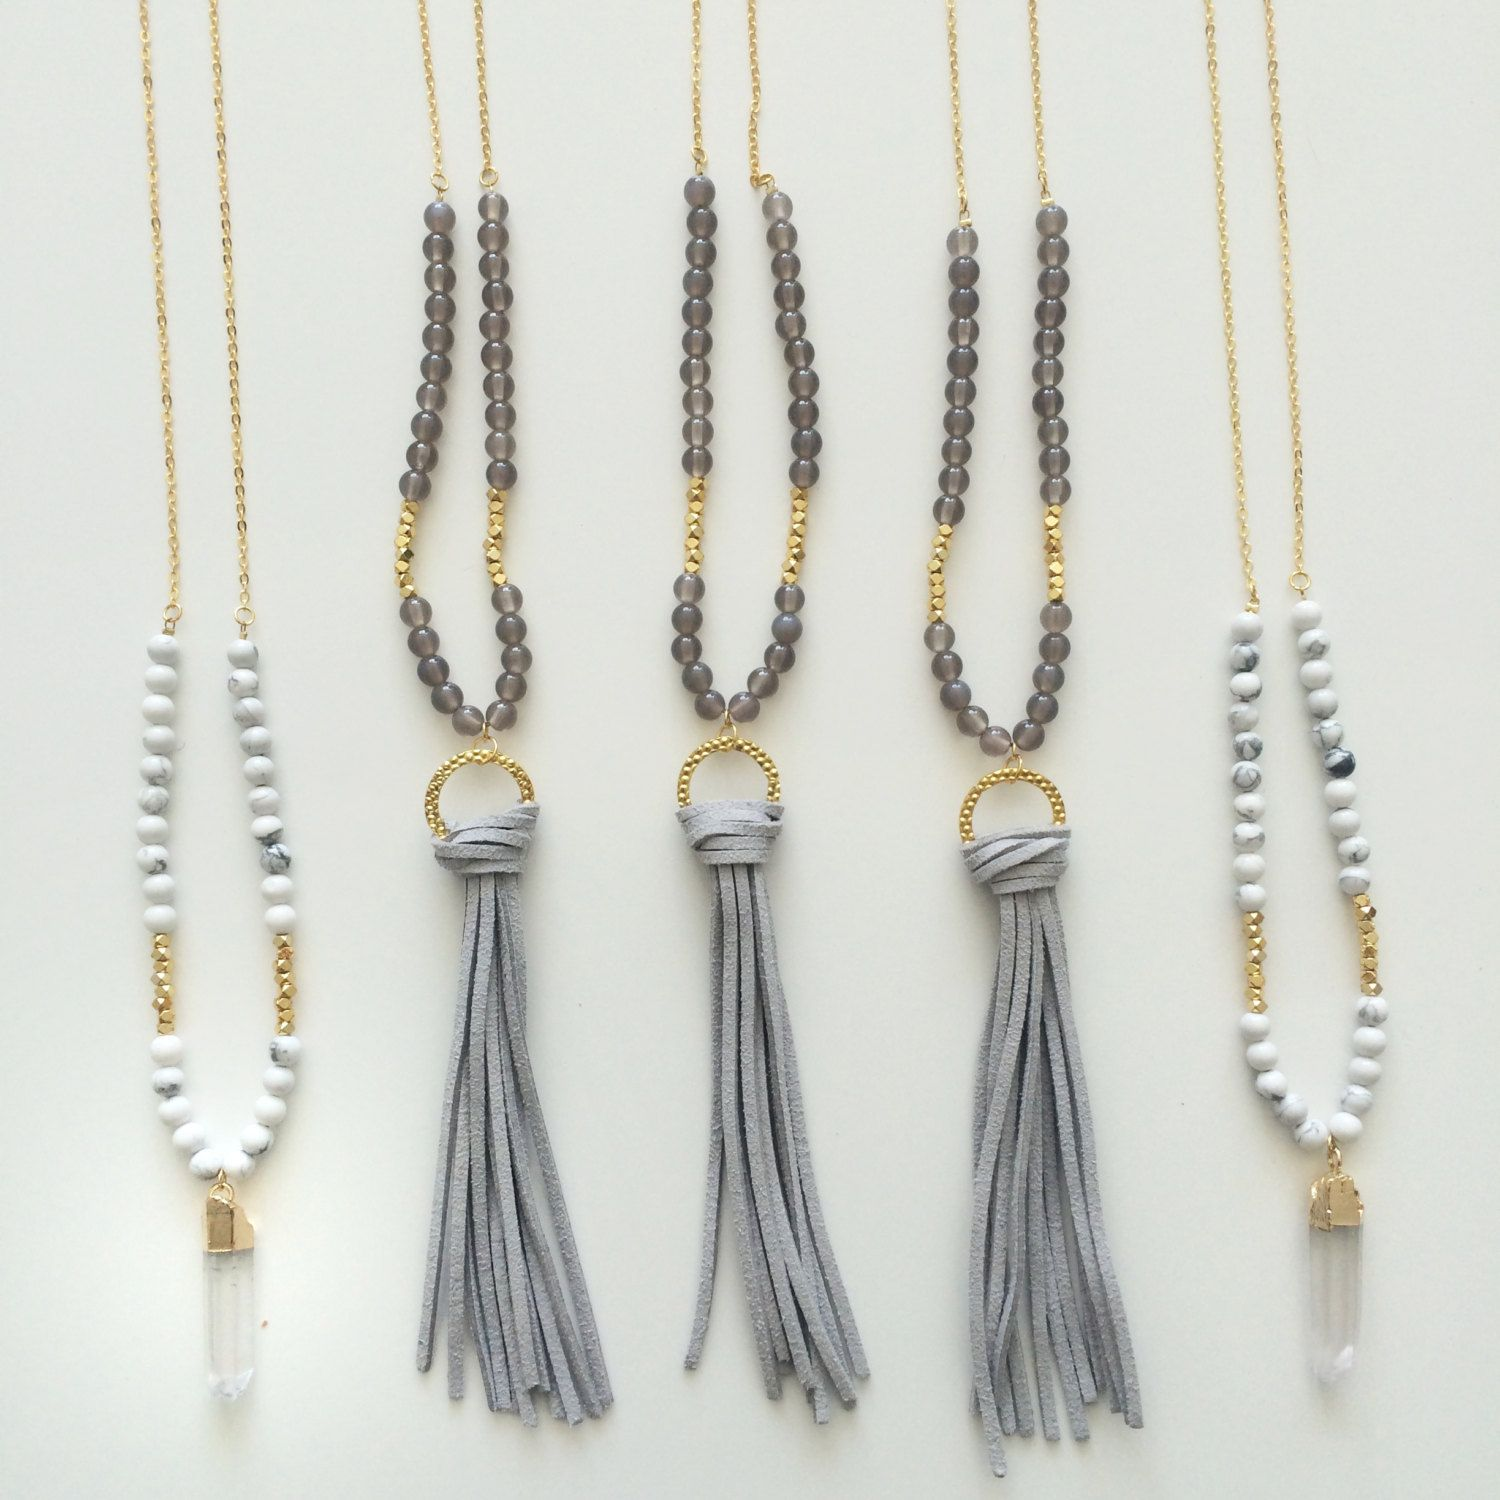 leather tassel necklace - beaded long necklace - druzy necklace